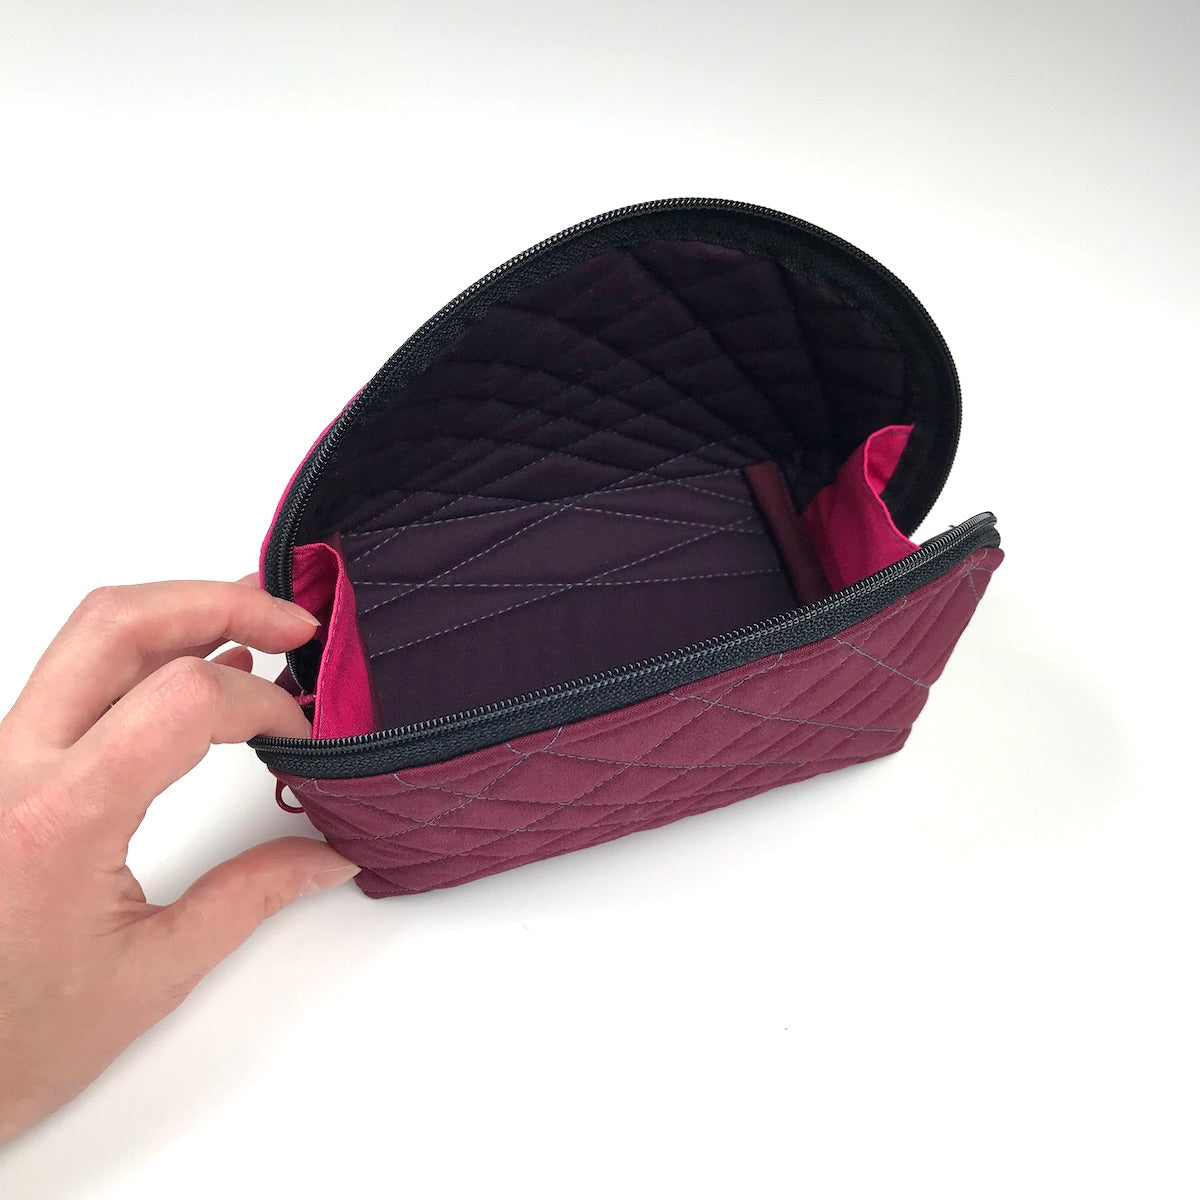 byAnnie Clam Up pouch interior